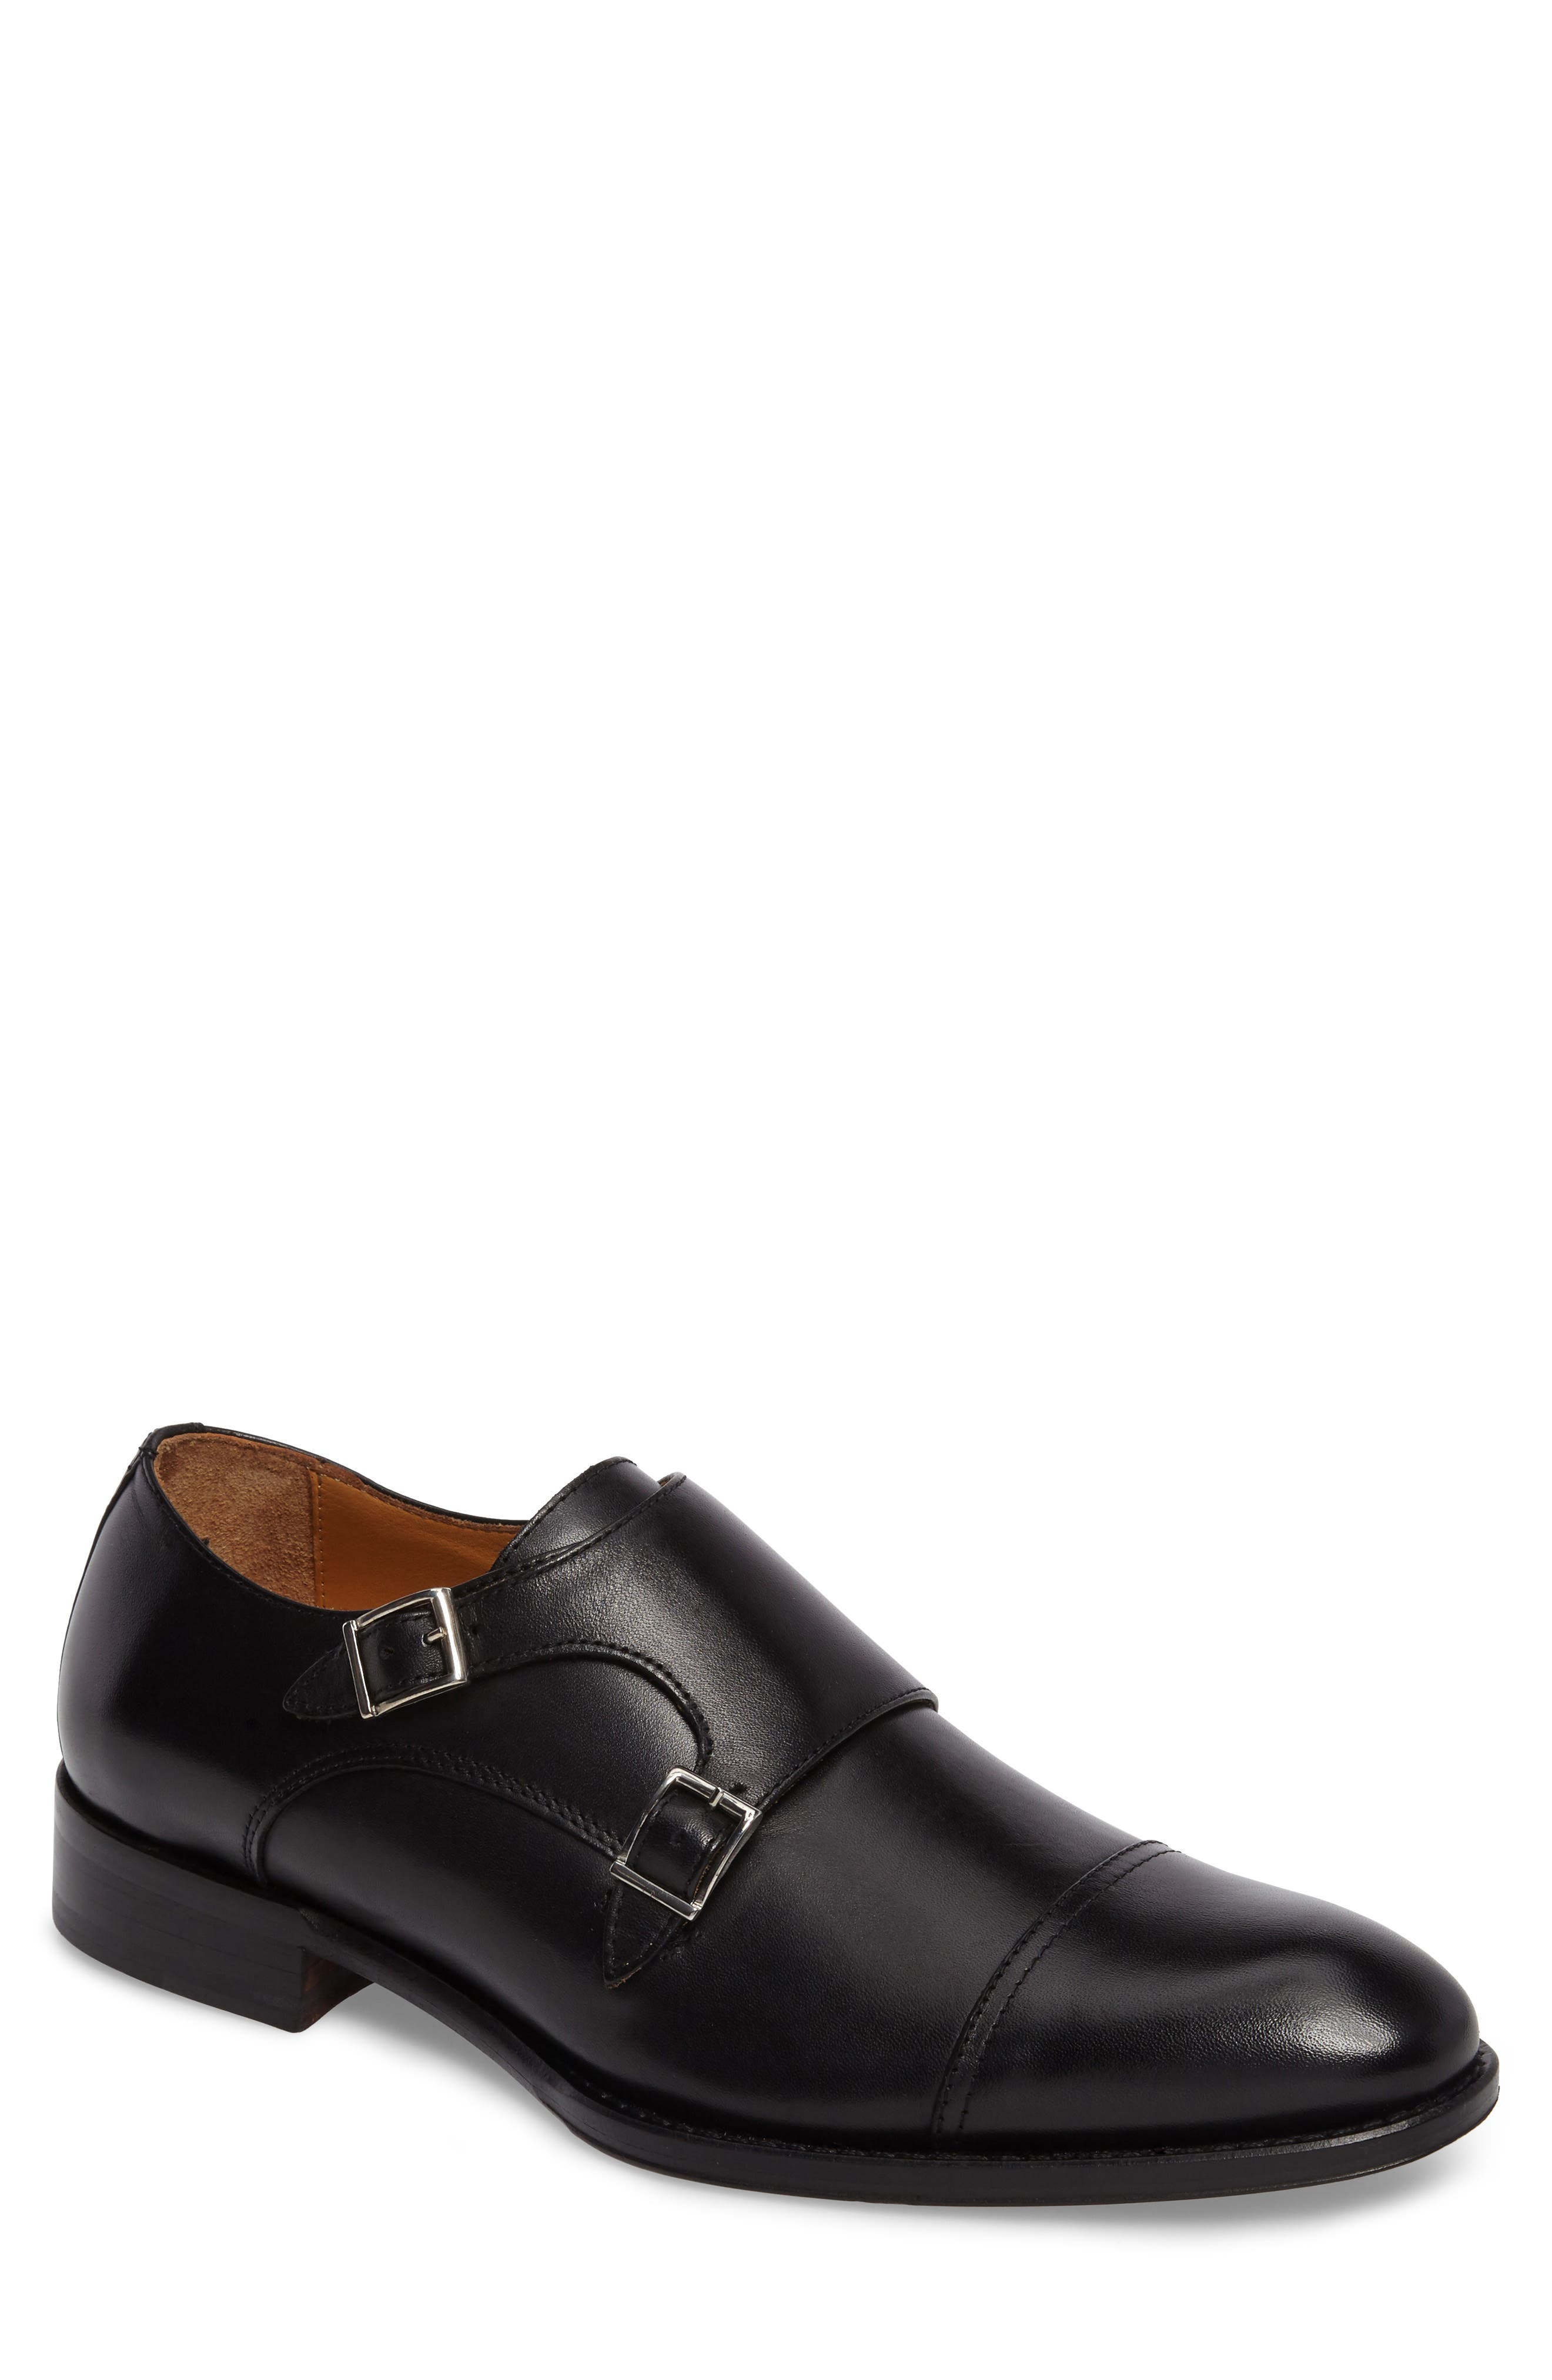 John W. Nordstrom® Stratton Double Monk Strap Shoe (Men)